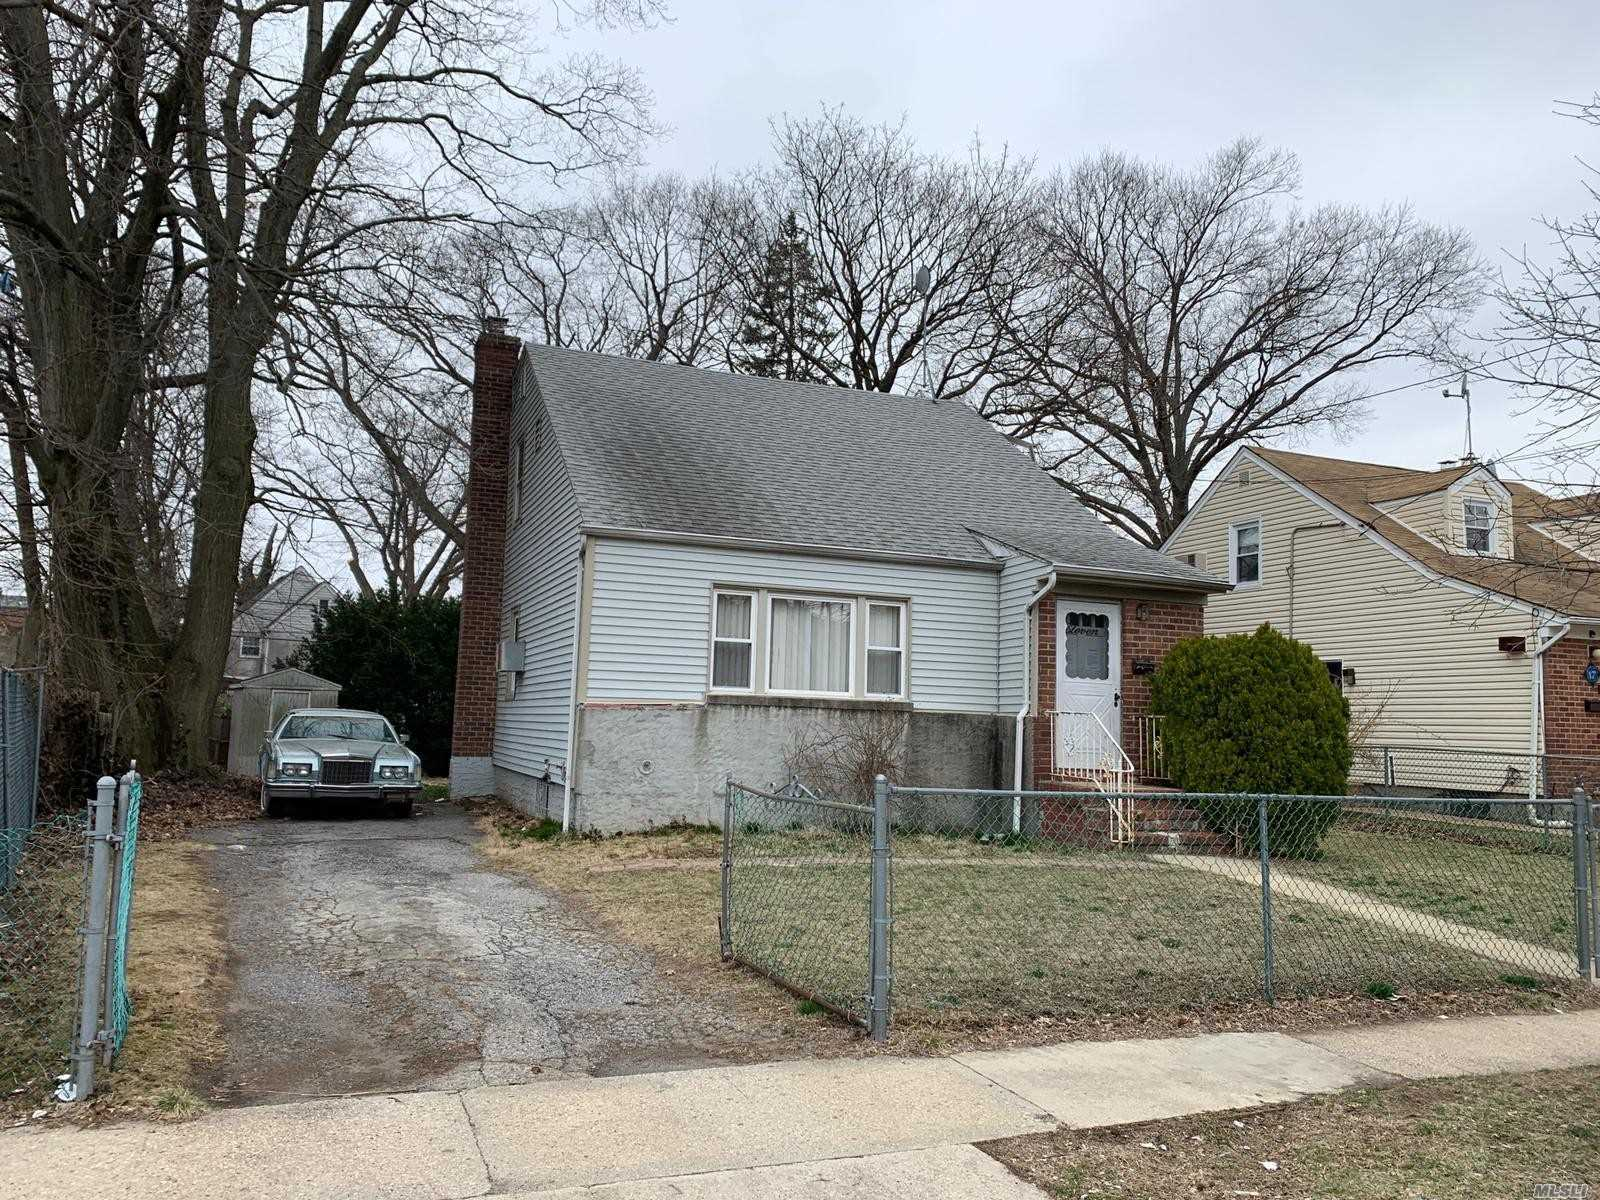 Detached Two Family Cape With Private Driveway and Full/Unfinished Basement Located In The Hempstead Section of Nassau County. The Property Features Three Bedrooms And Two Full Bathrooms.